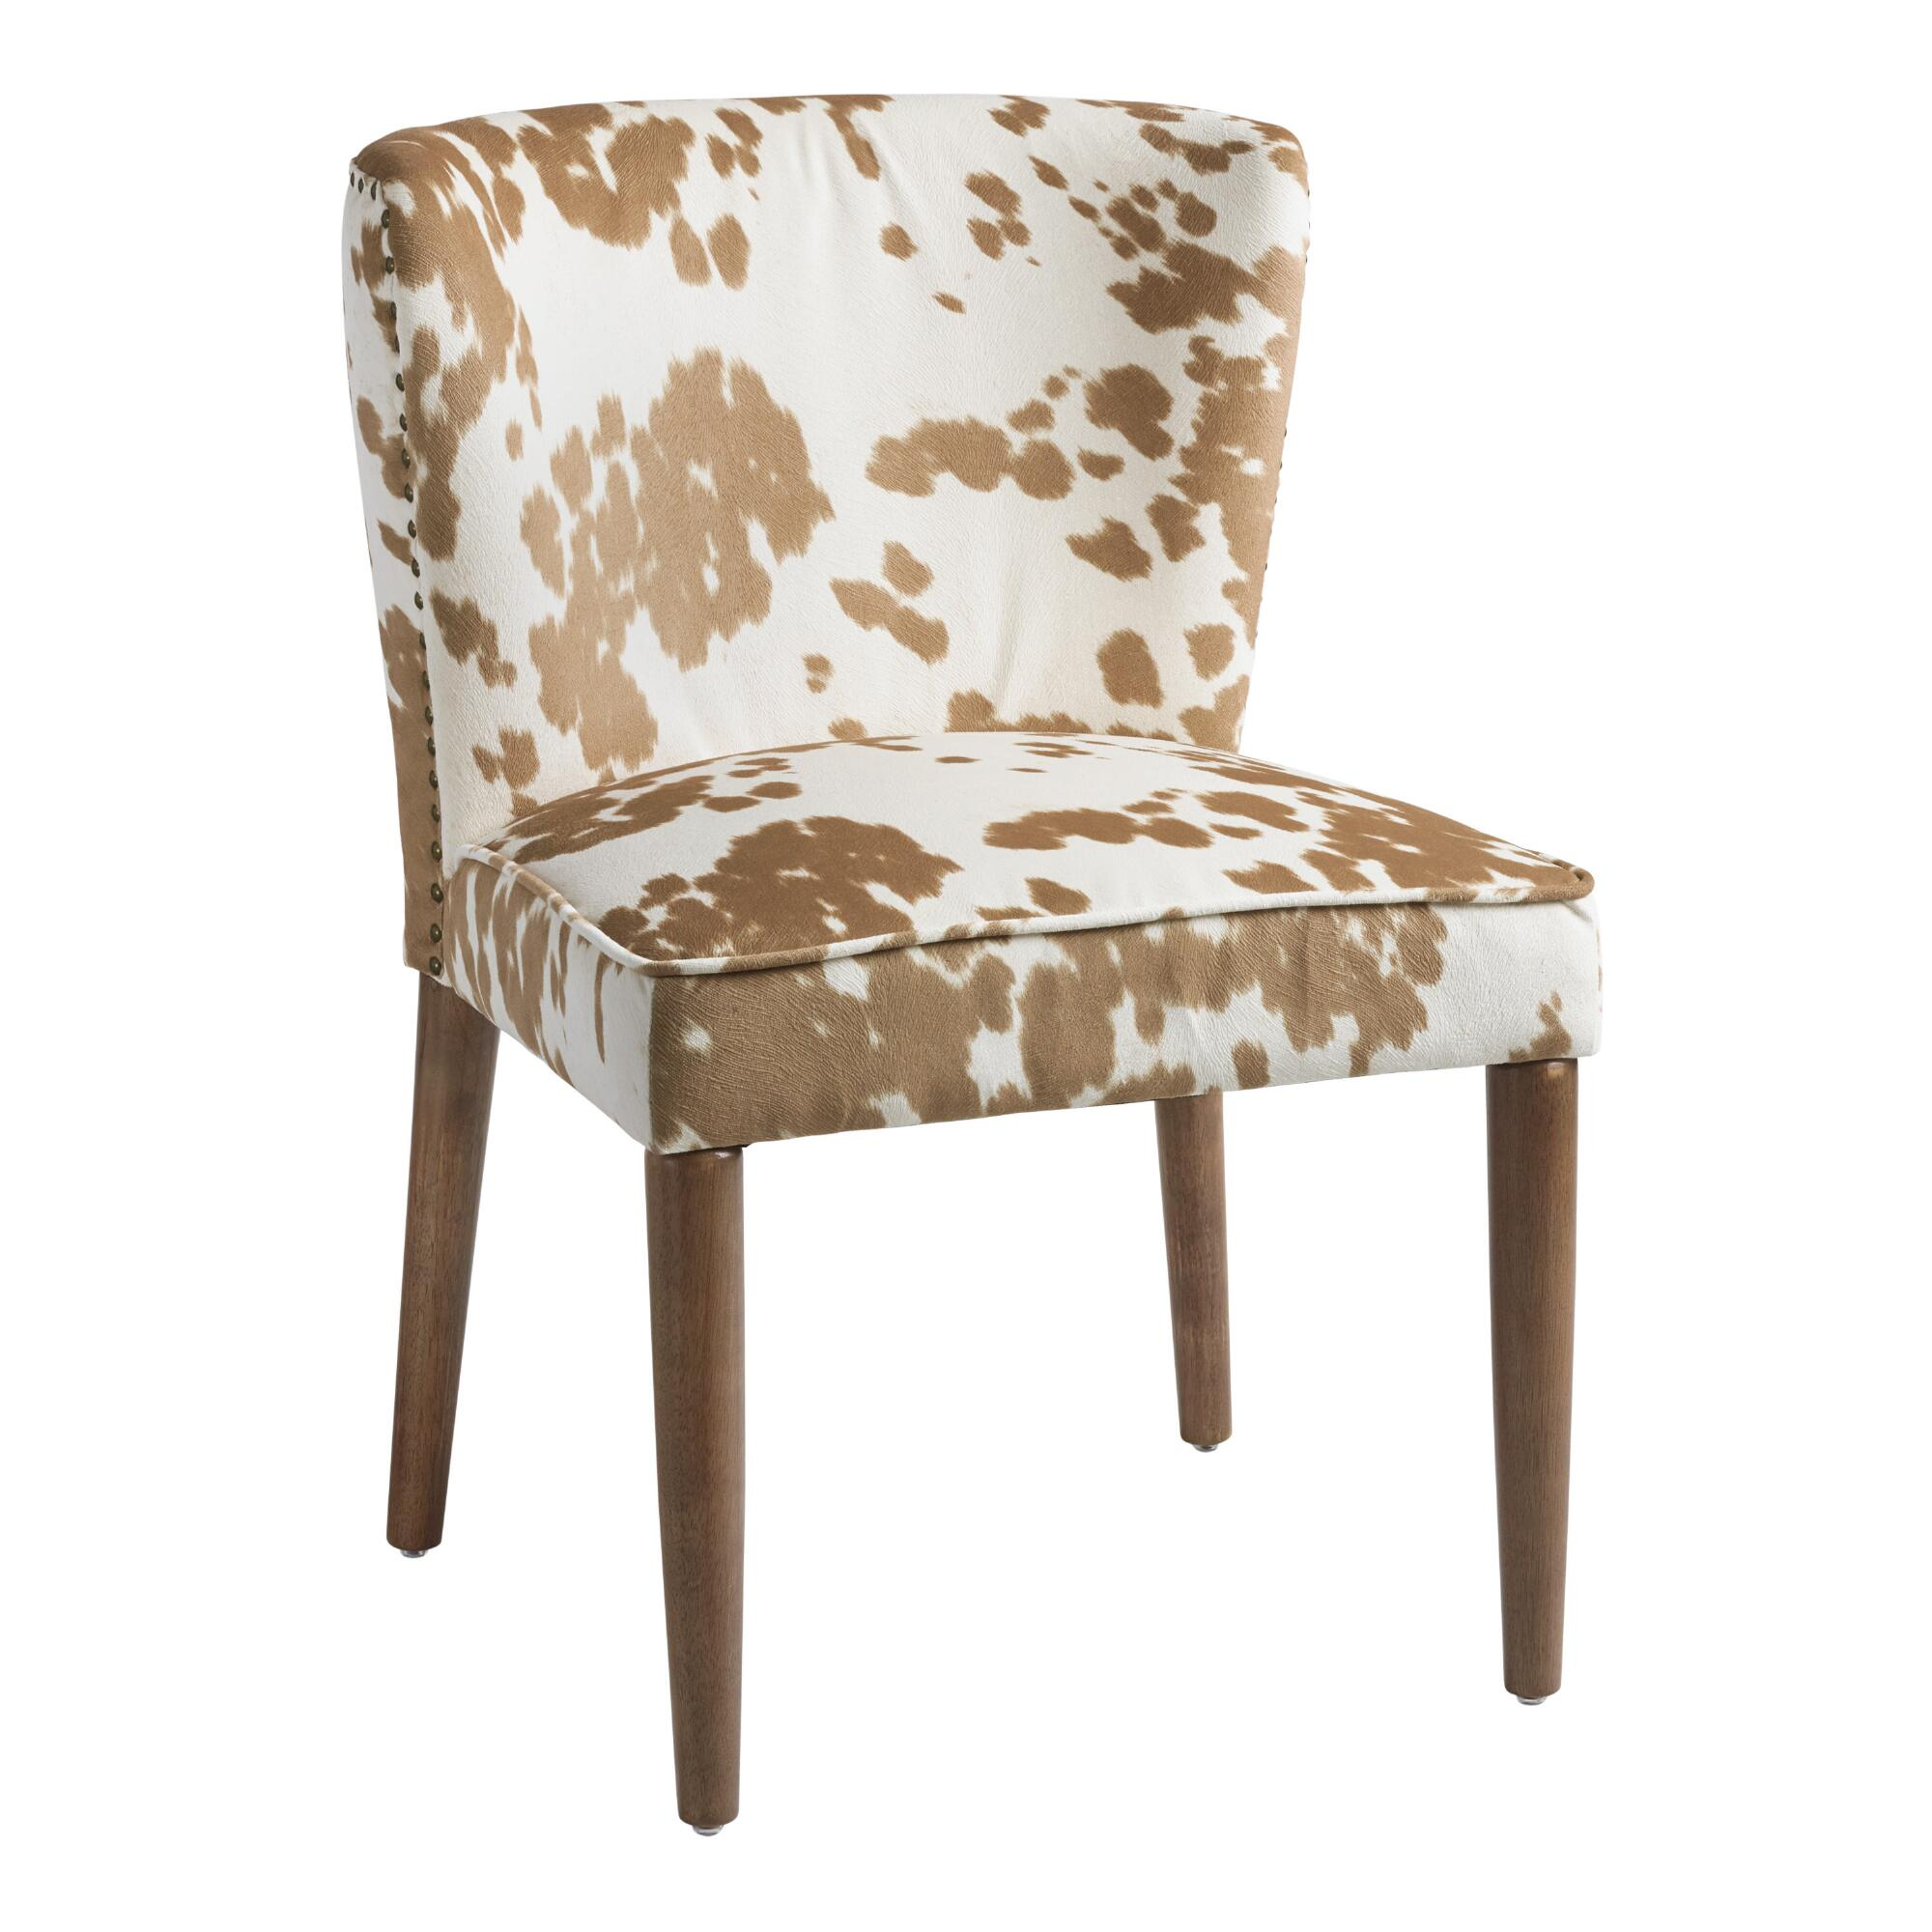 Donnan Wishbone Armchair with Upholstered Seat | World Market